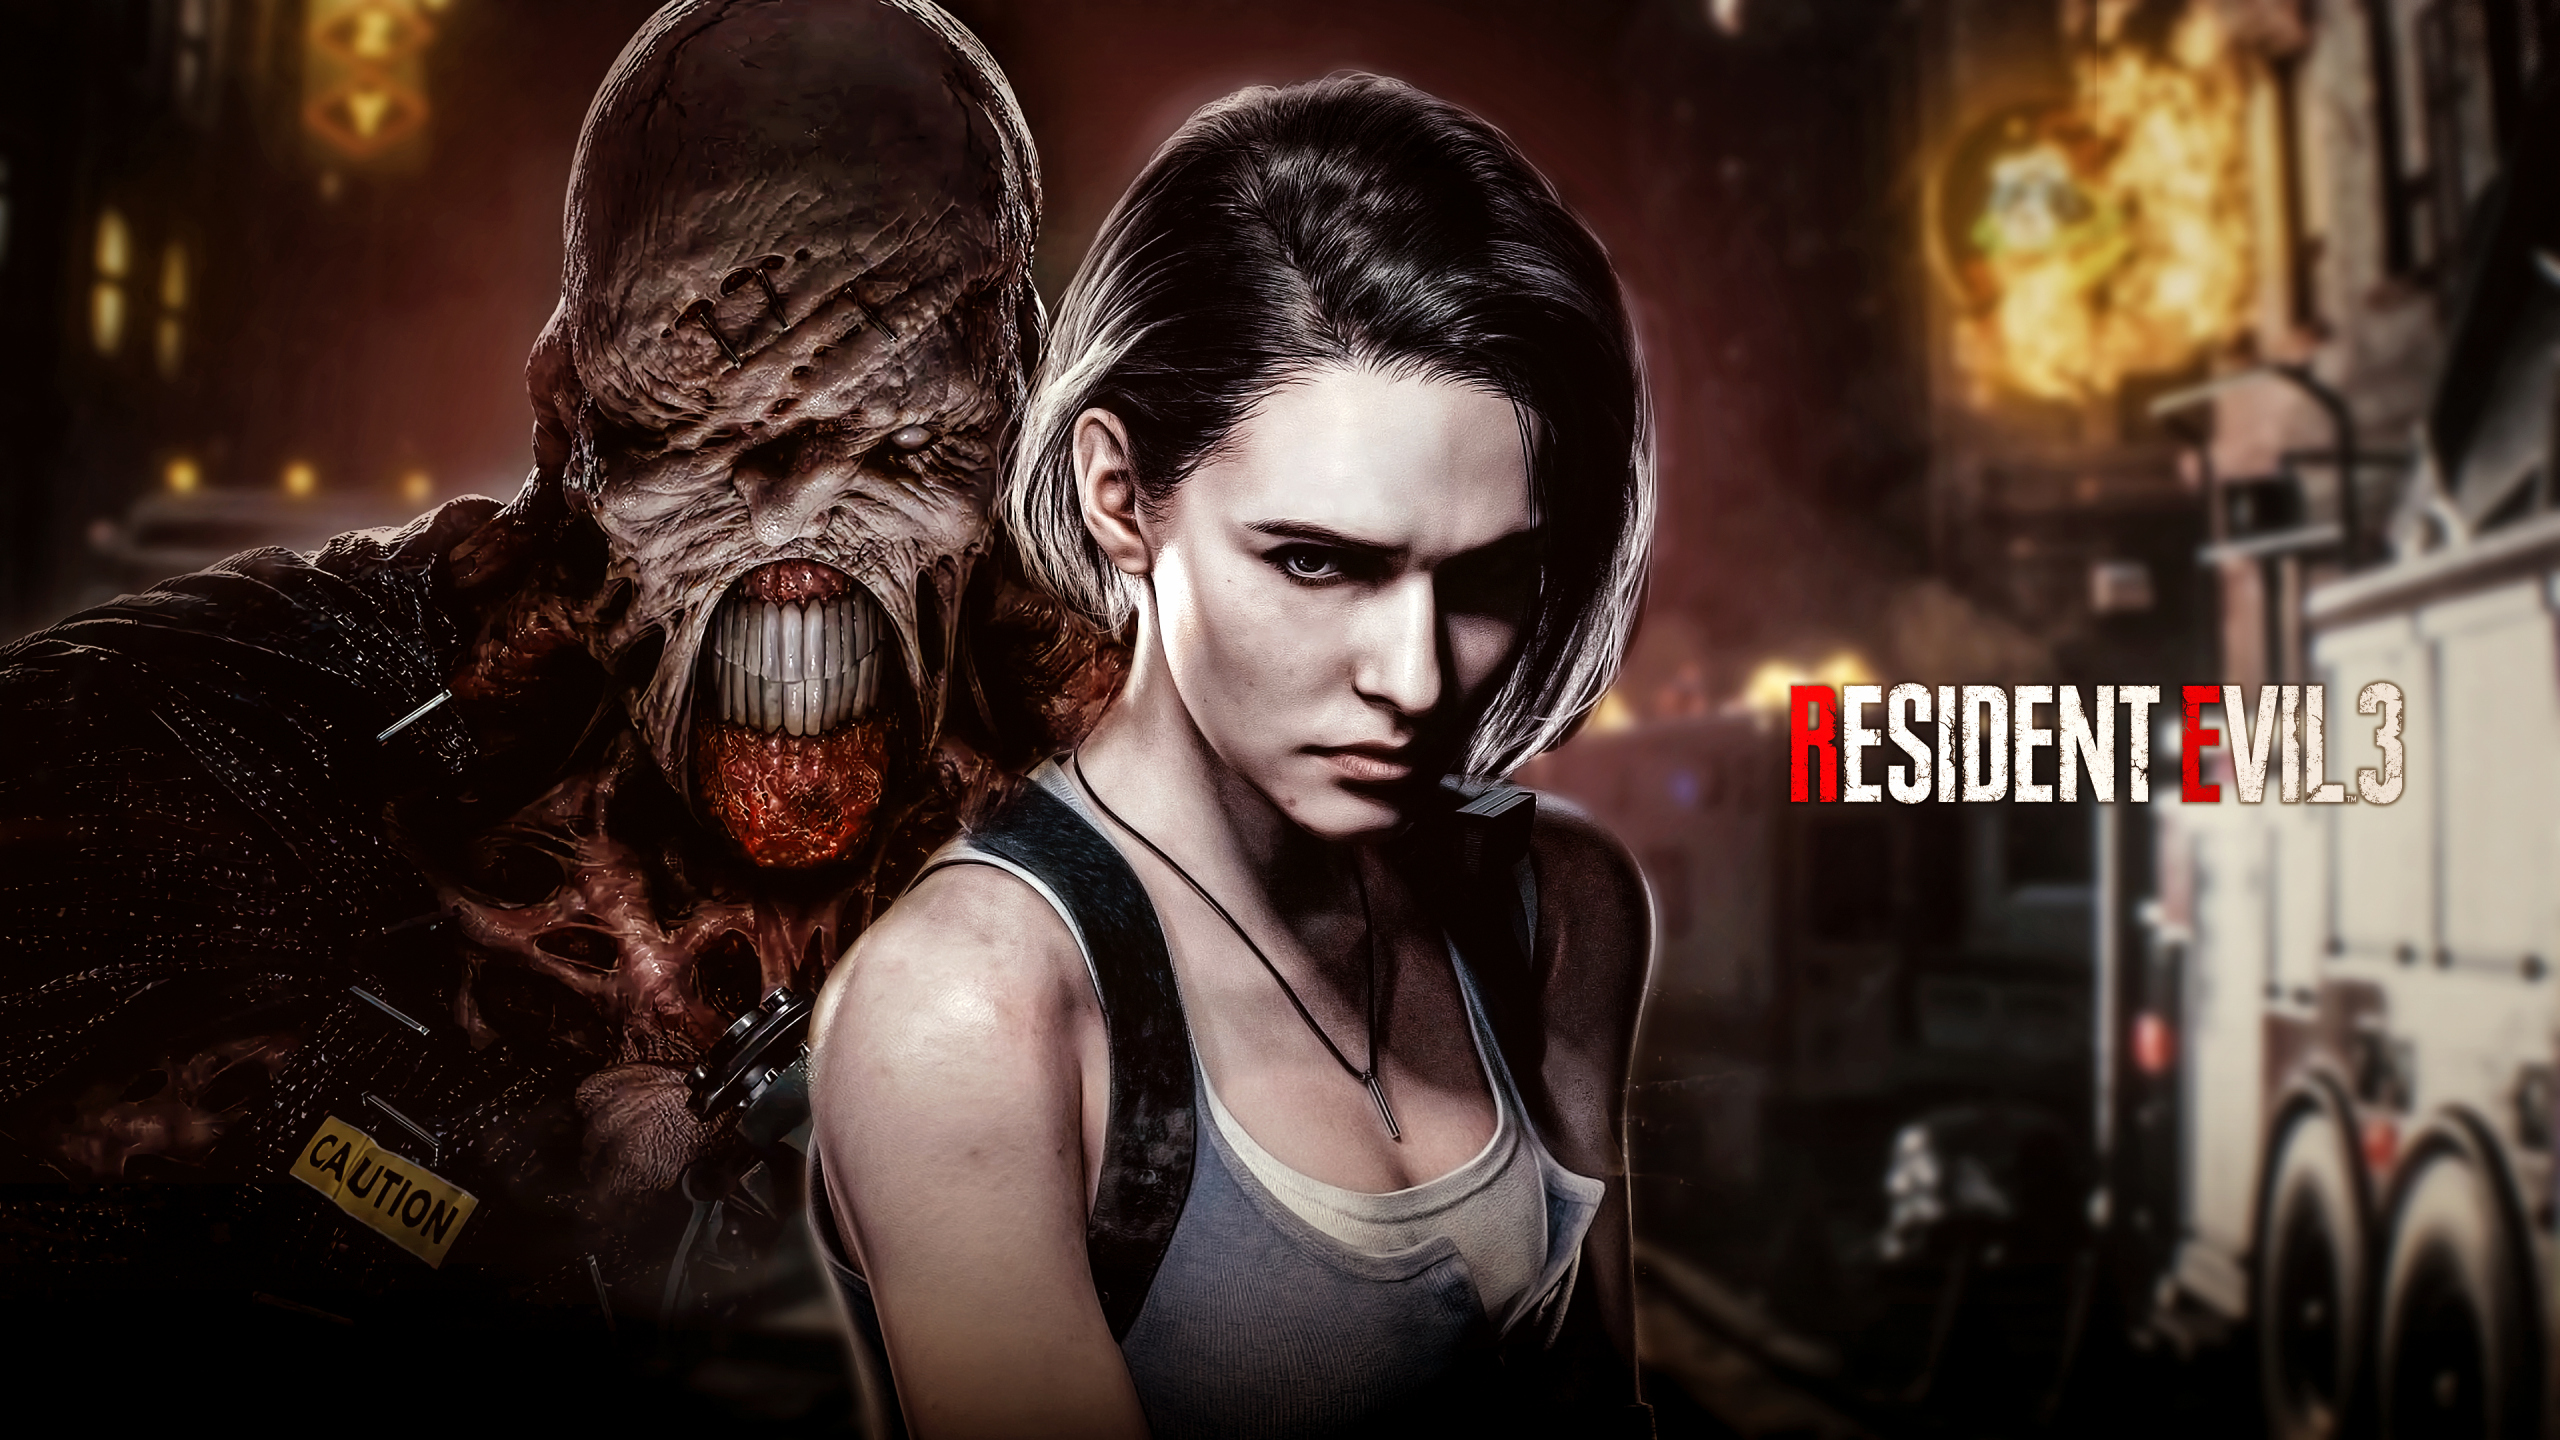 Resident Evil 3 2020 Desktop Wallpaper 2560x1440